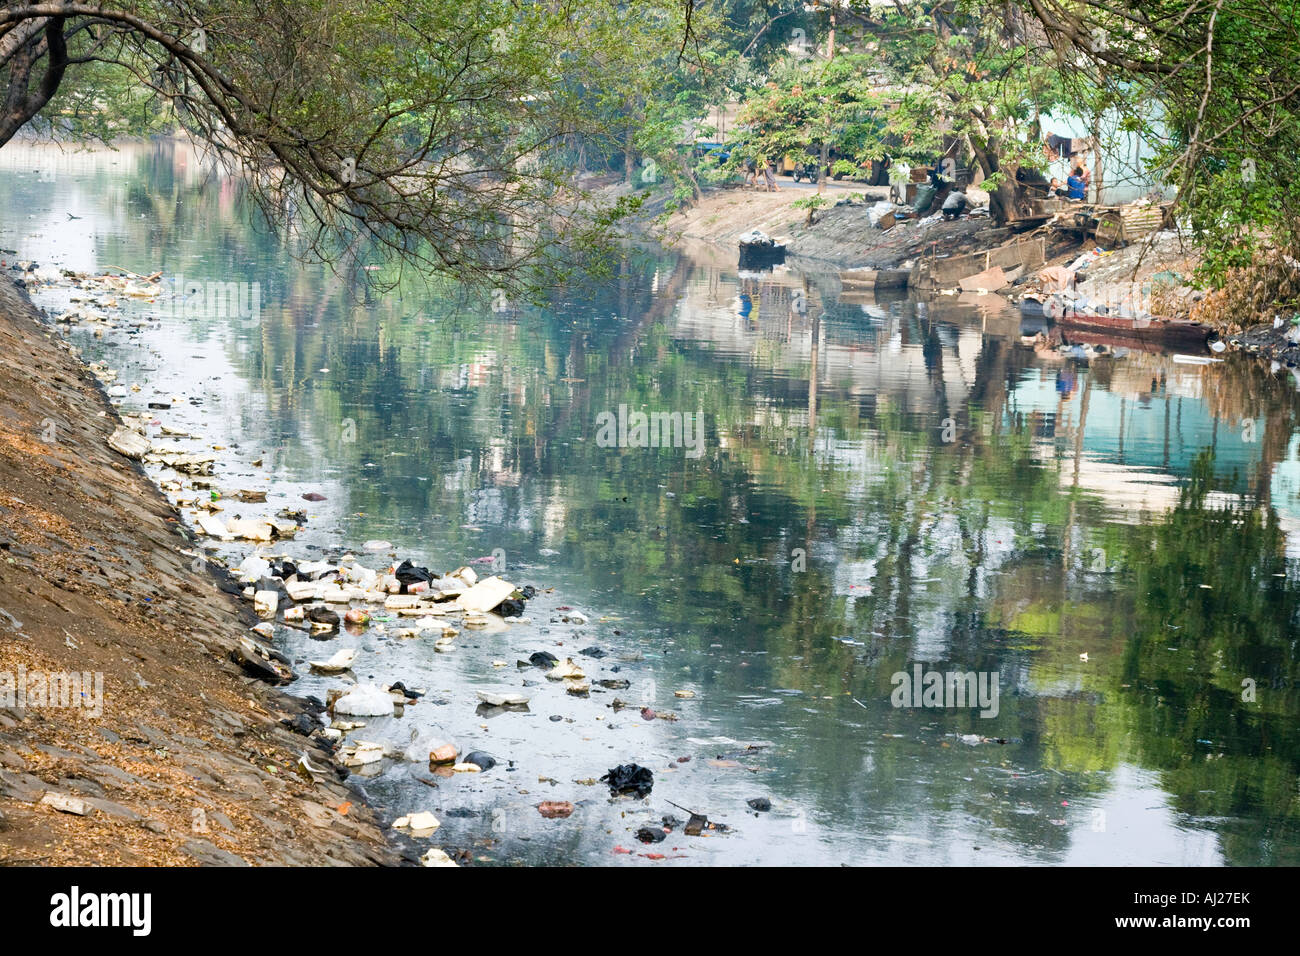 Polluted River Filled with Rubbish Jakarta Indonesia - Stock Image